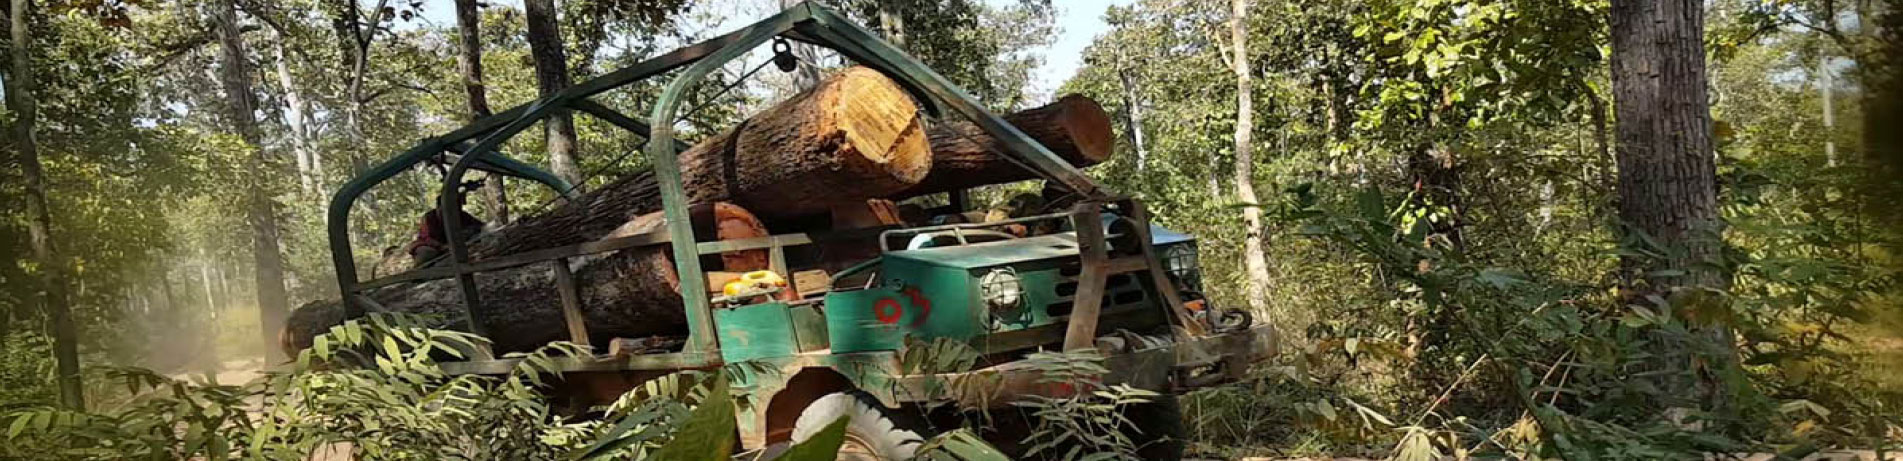 Truck carrying illegal timber, Cambodia